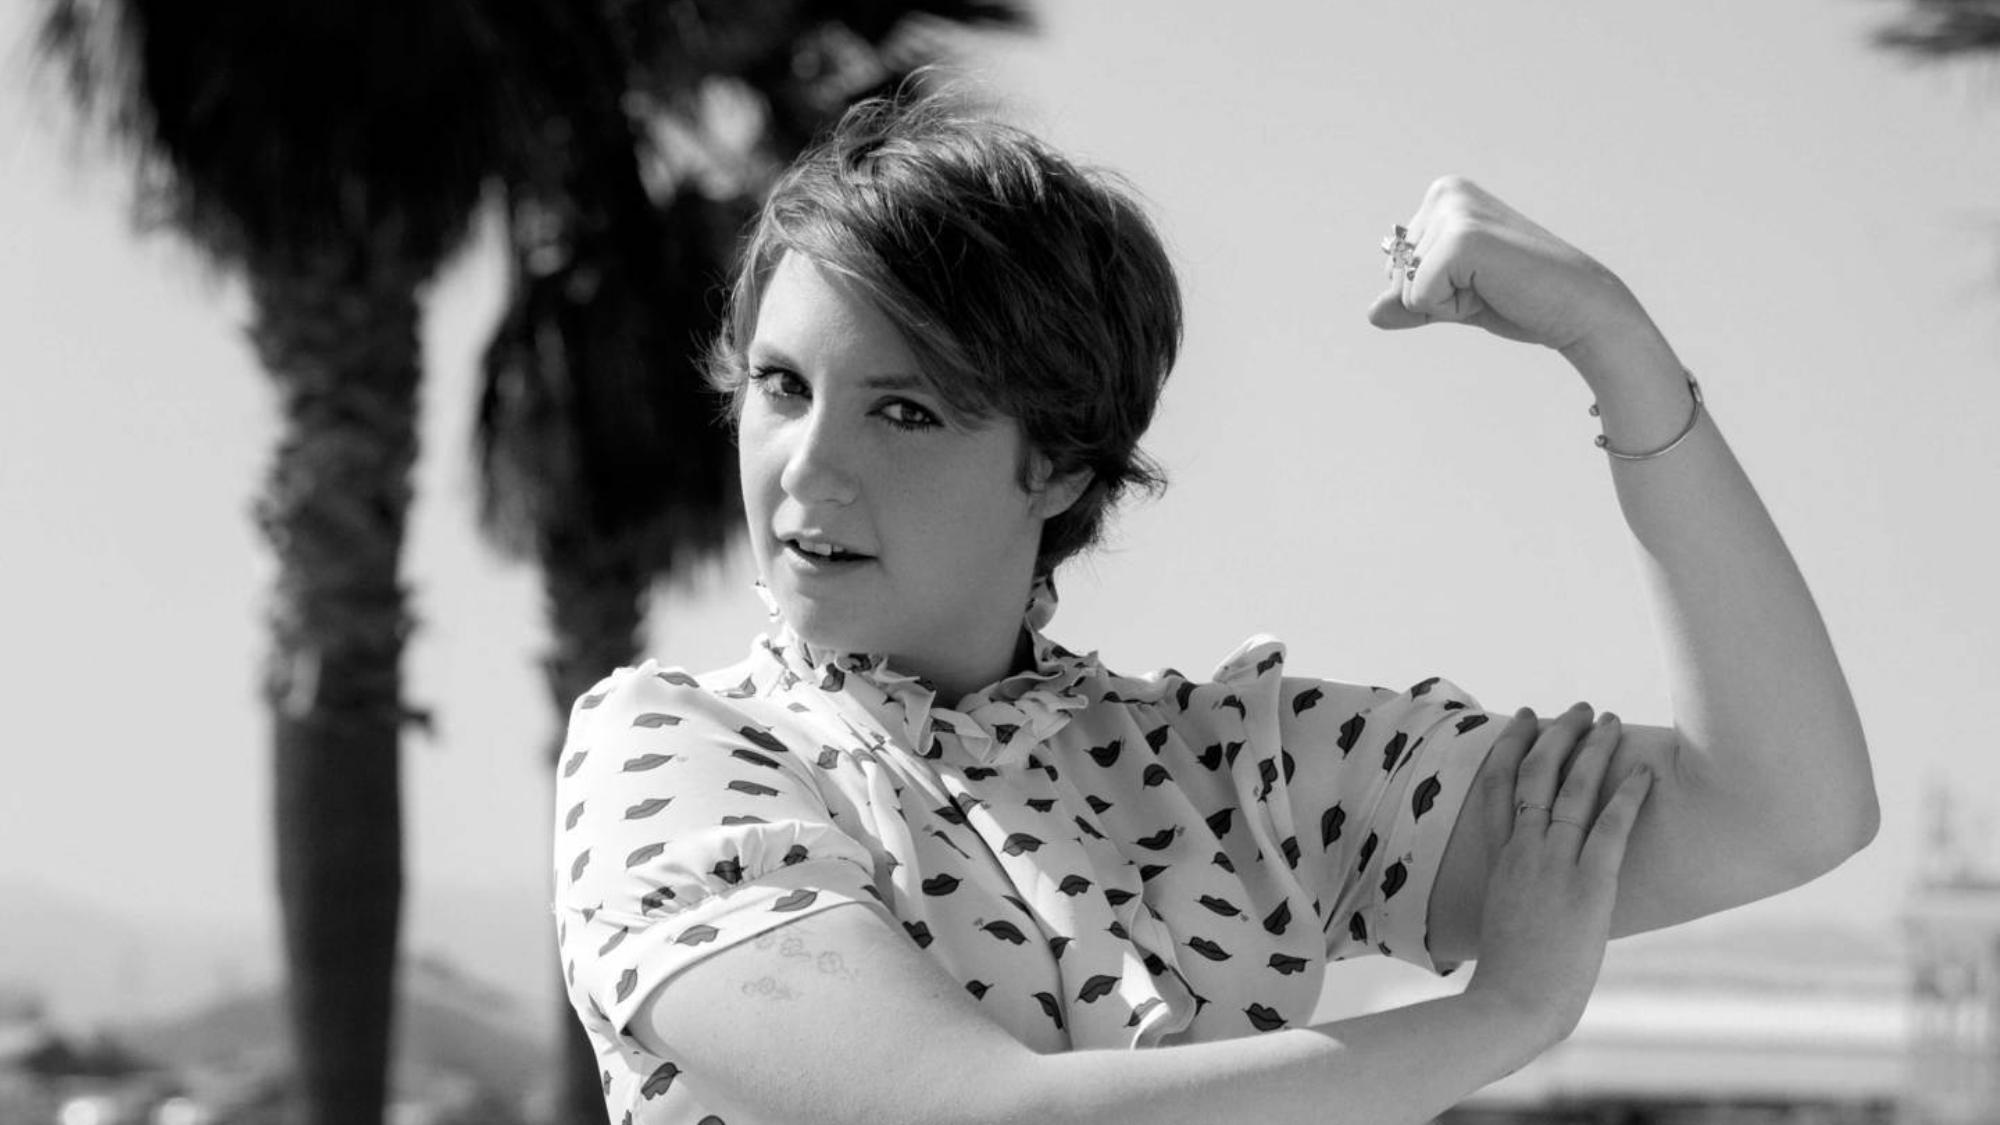 I m Obsessed With Lena Dunham (And You Should Be Too) dc1f418ce